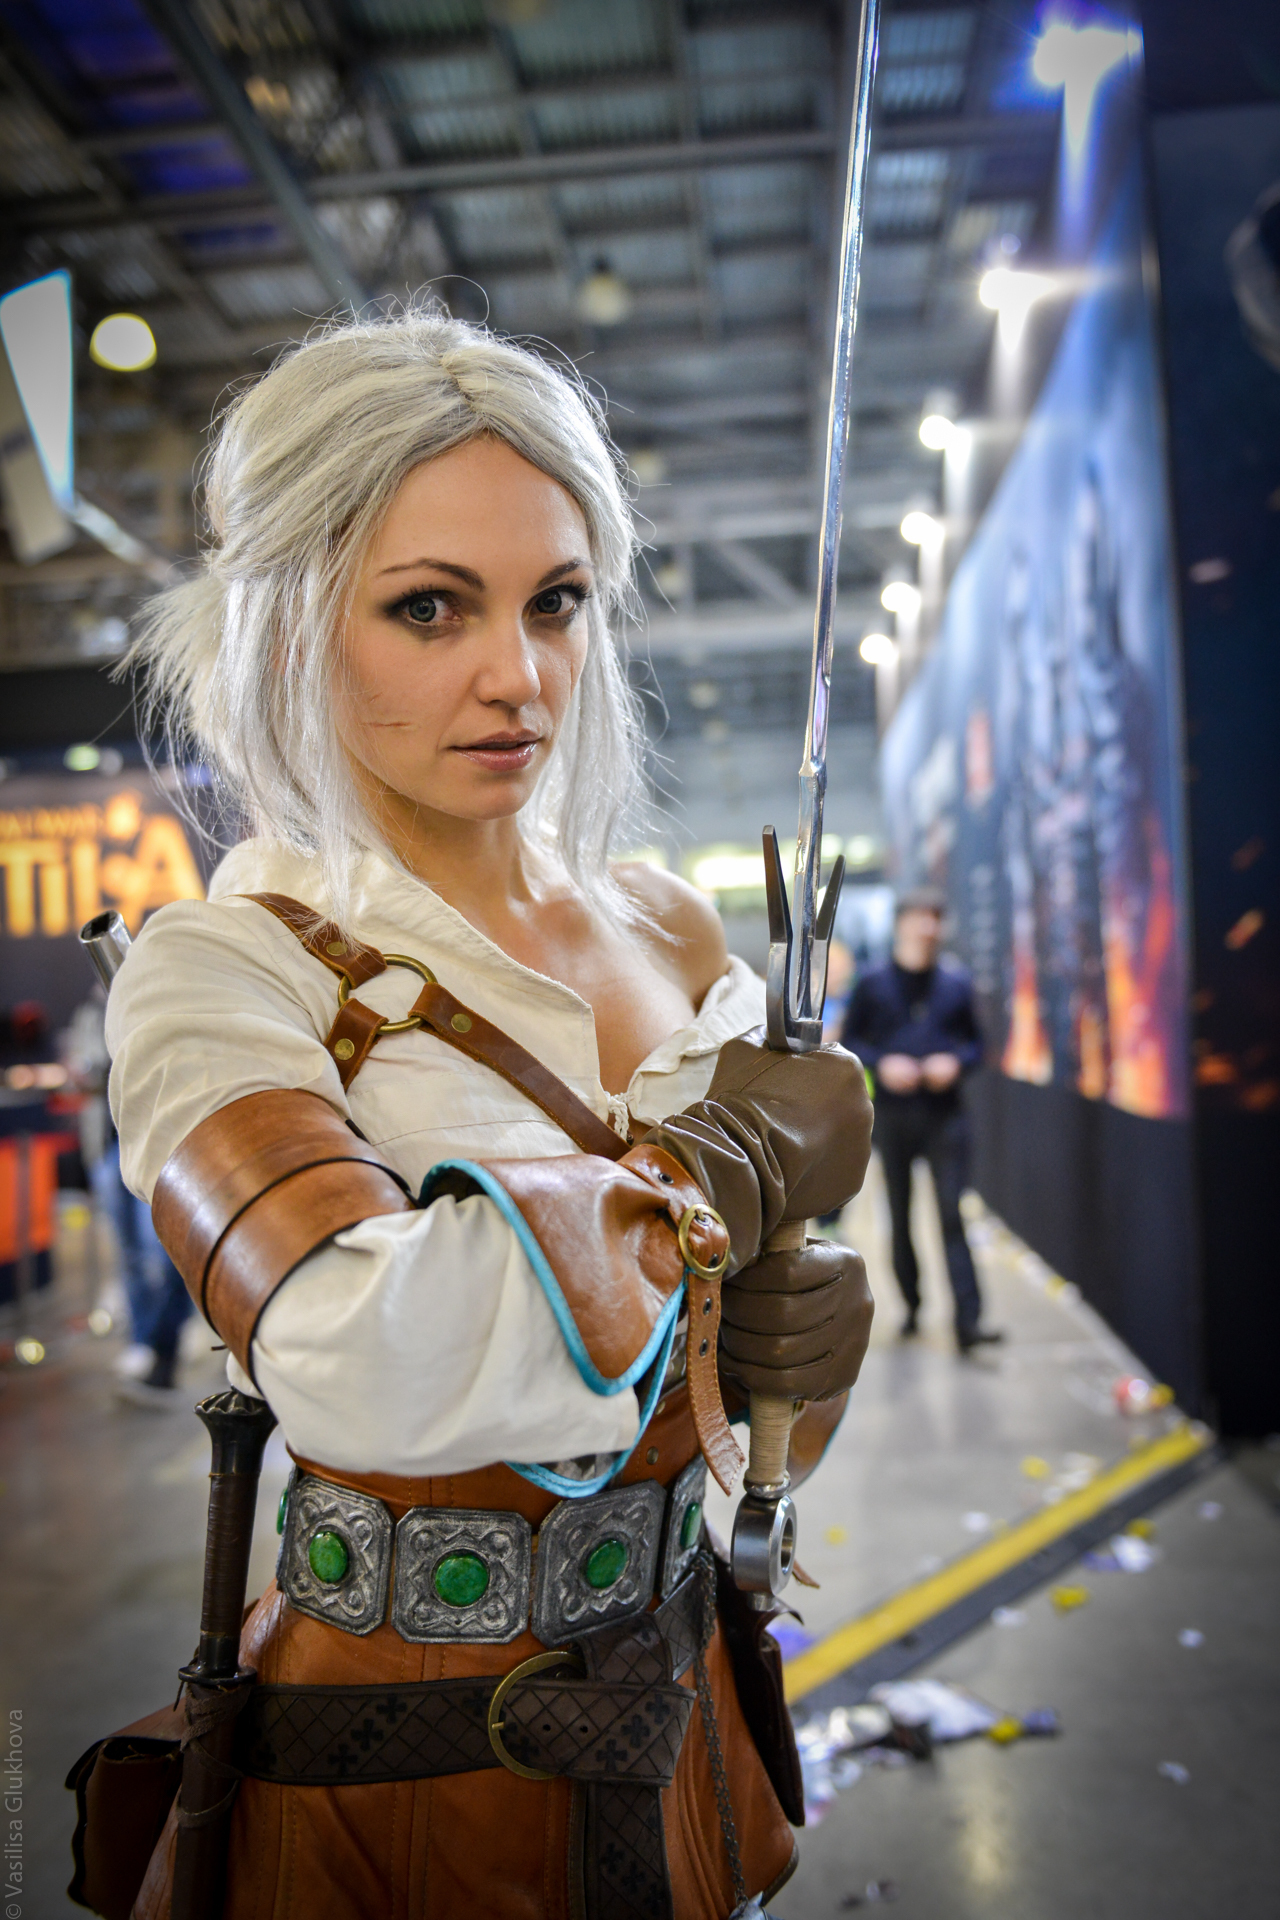 1000+ images about Cosplay on Pinterest | Mass effect ...